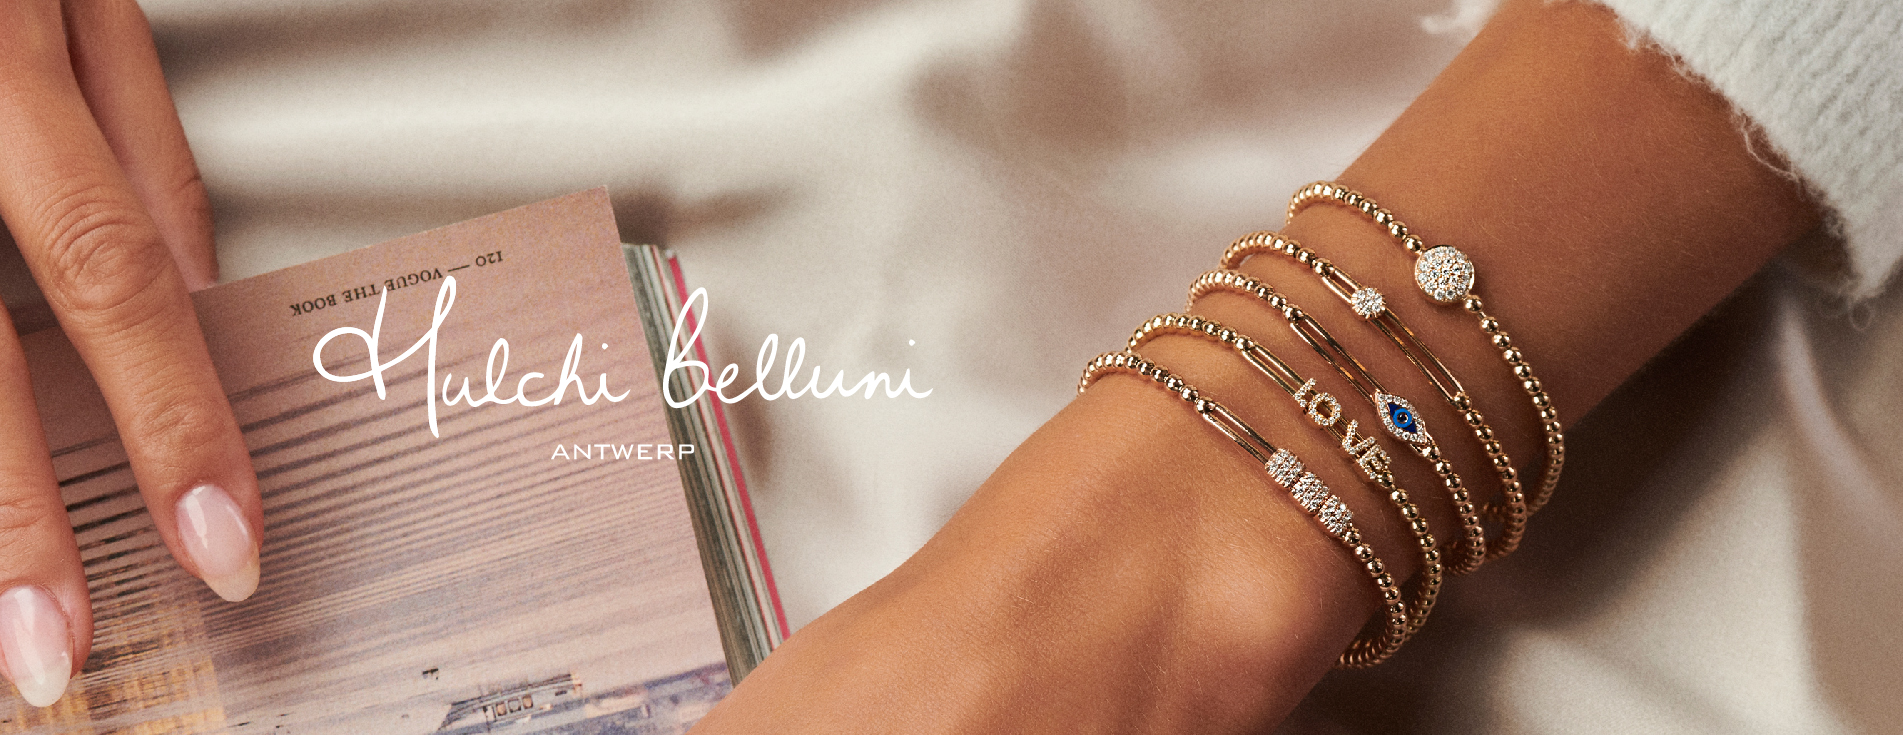 Hulchi Belluni Collections at Louis Anthony Jewelers, Pittsburgh PA